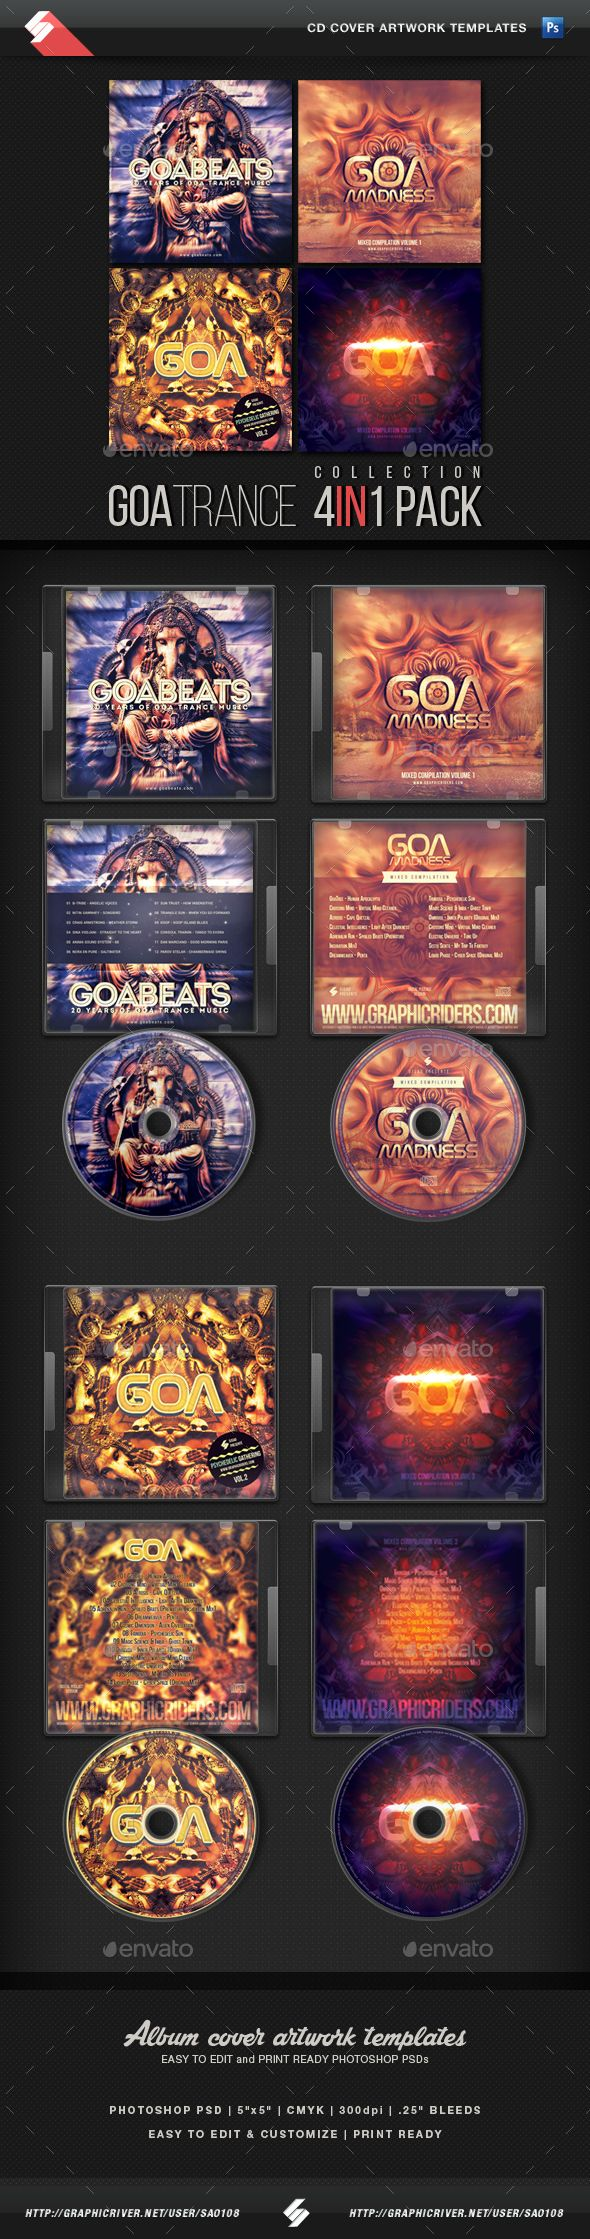 pin by best graphic design on cd dvd cover templates pinterest